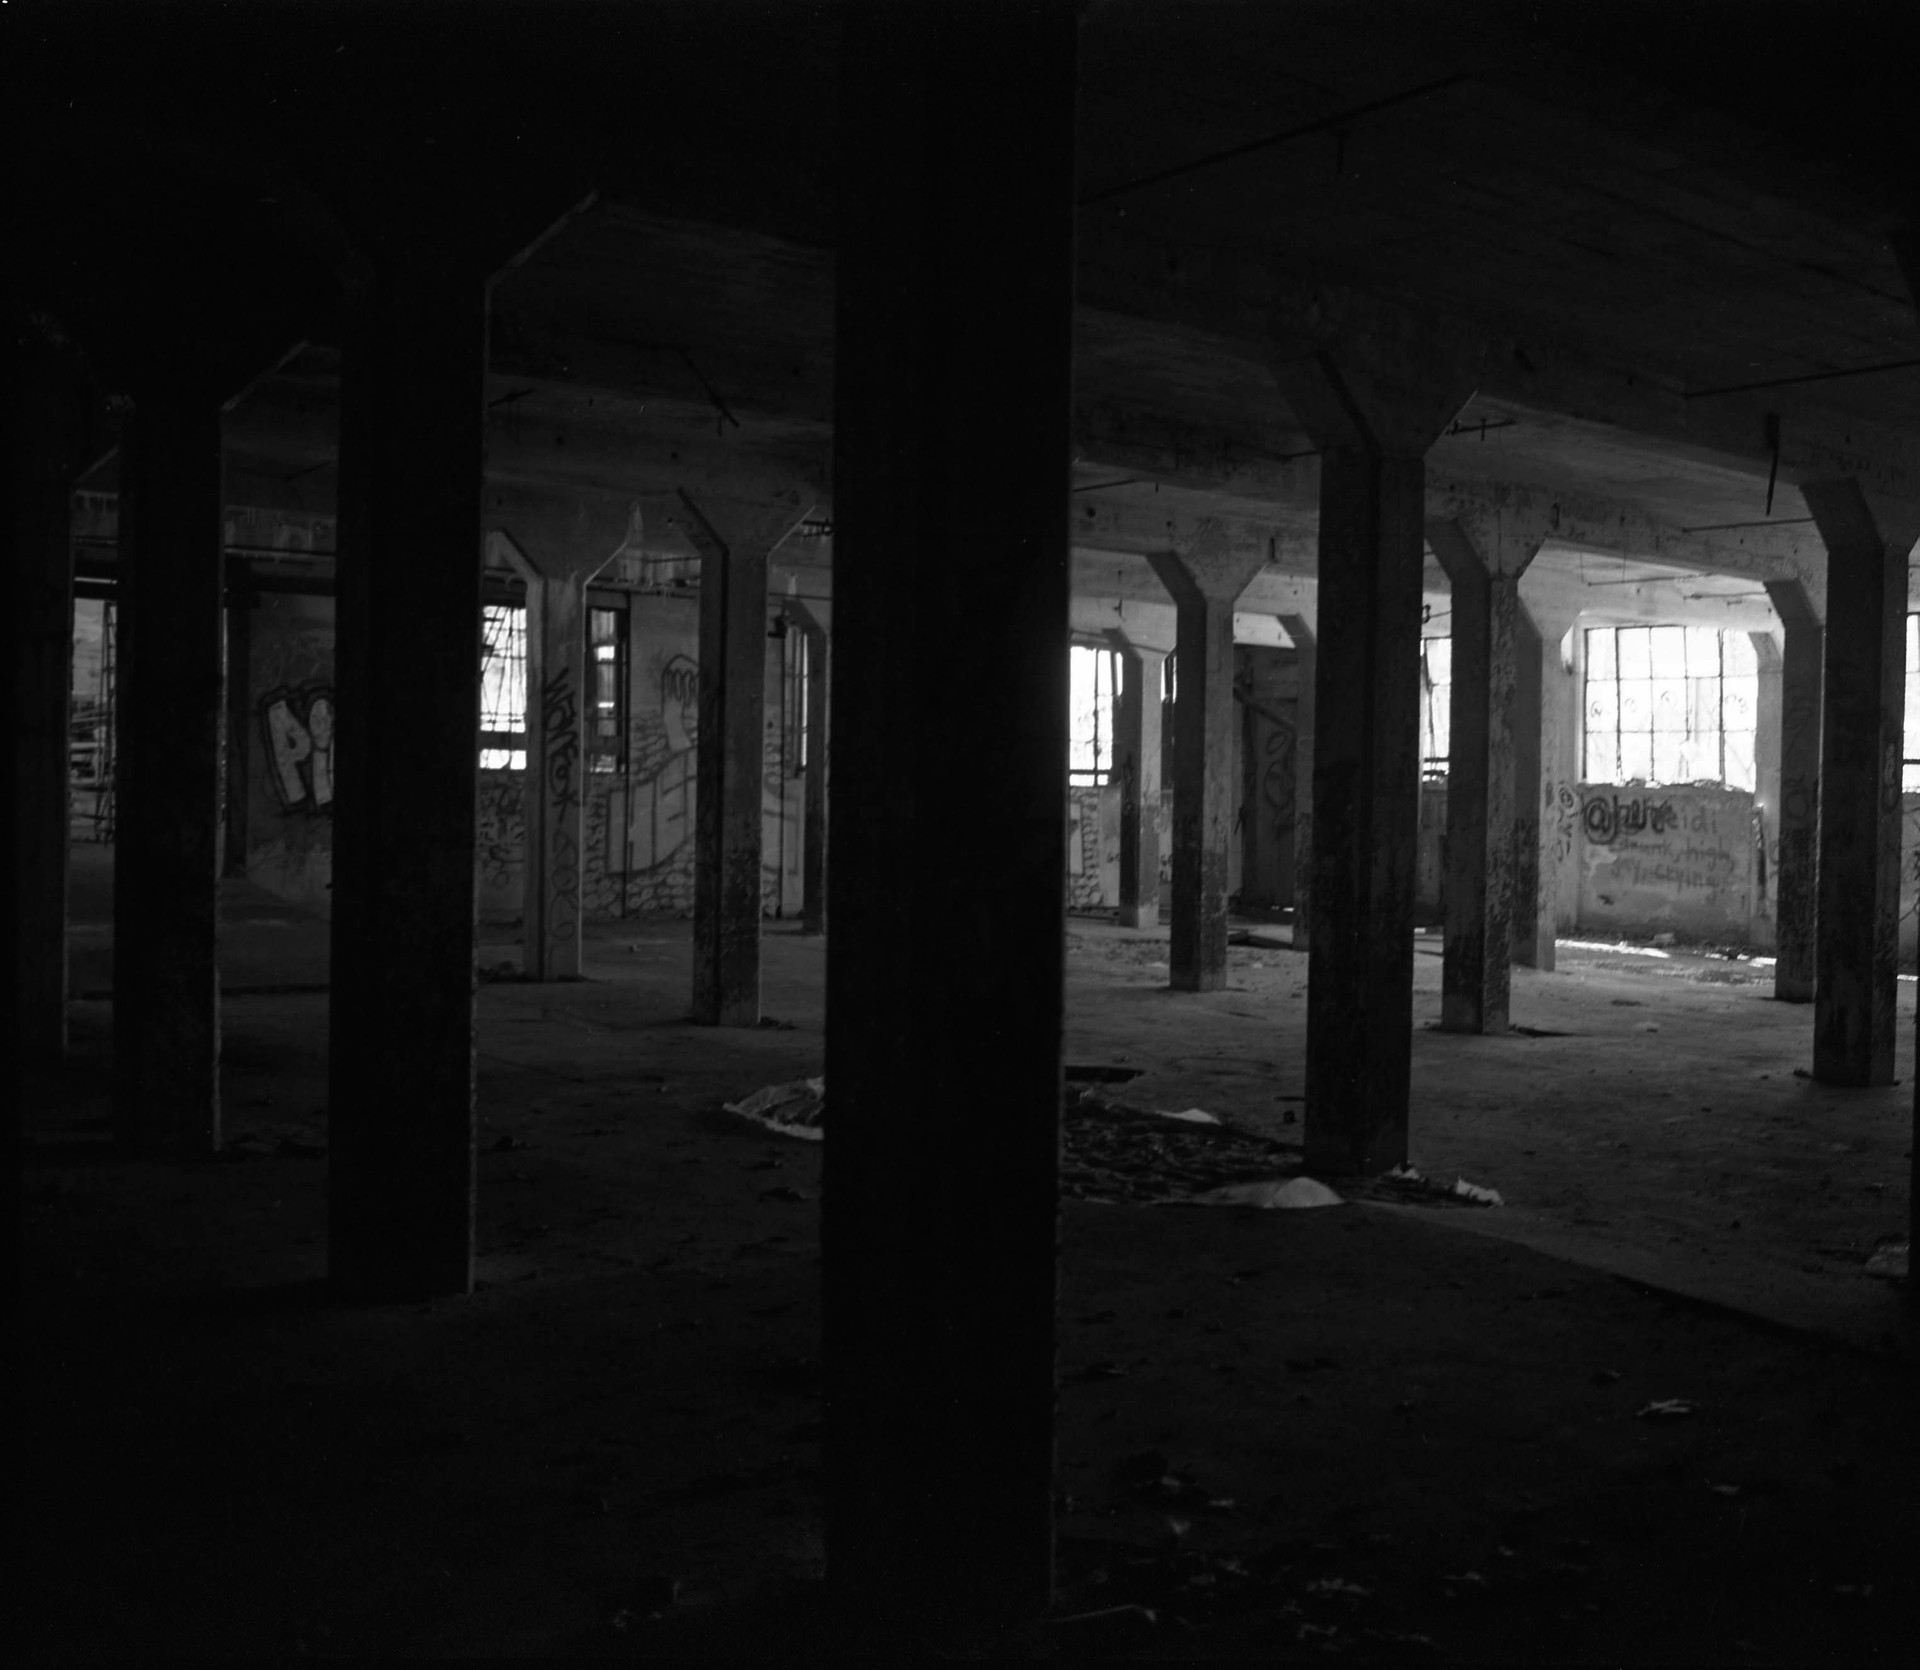 keddy mill, dark